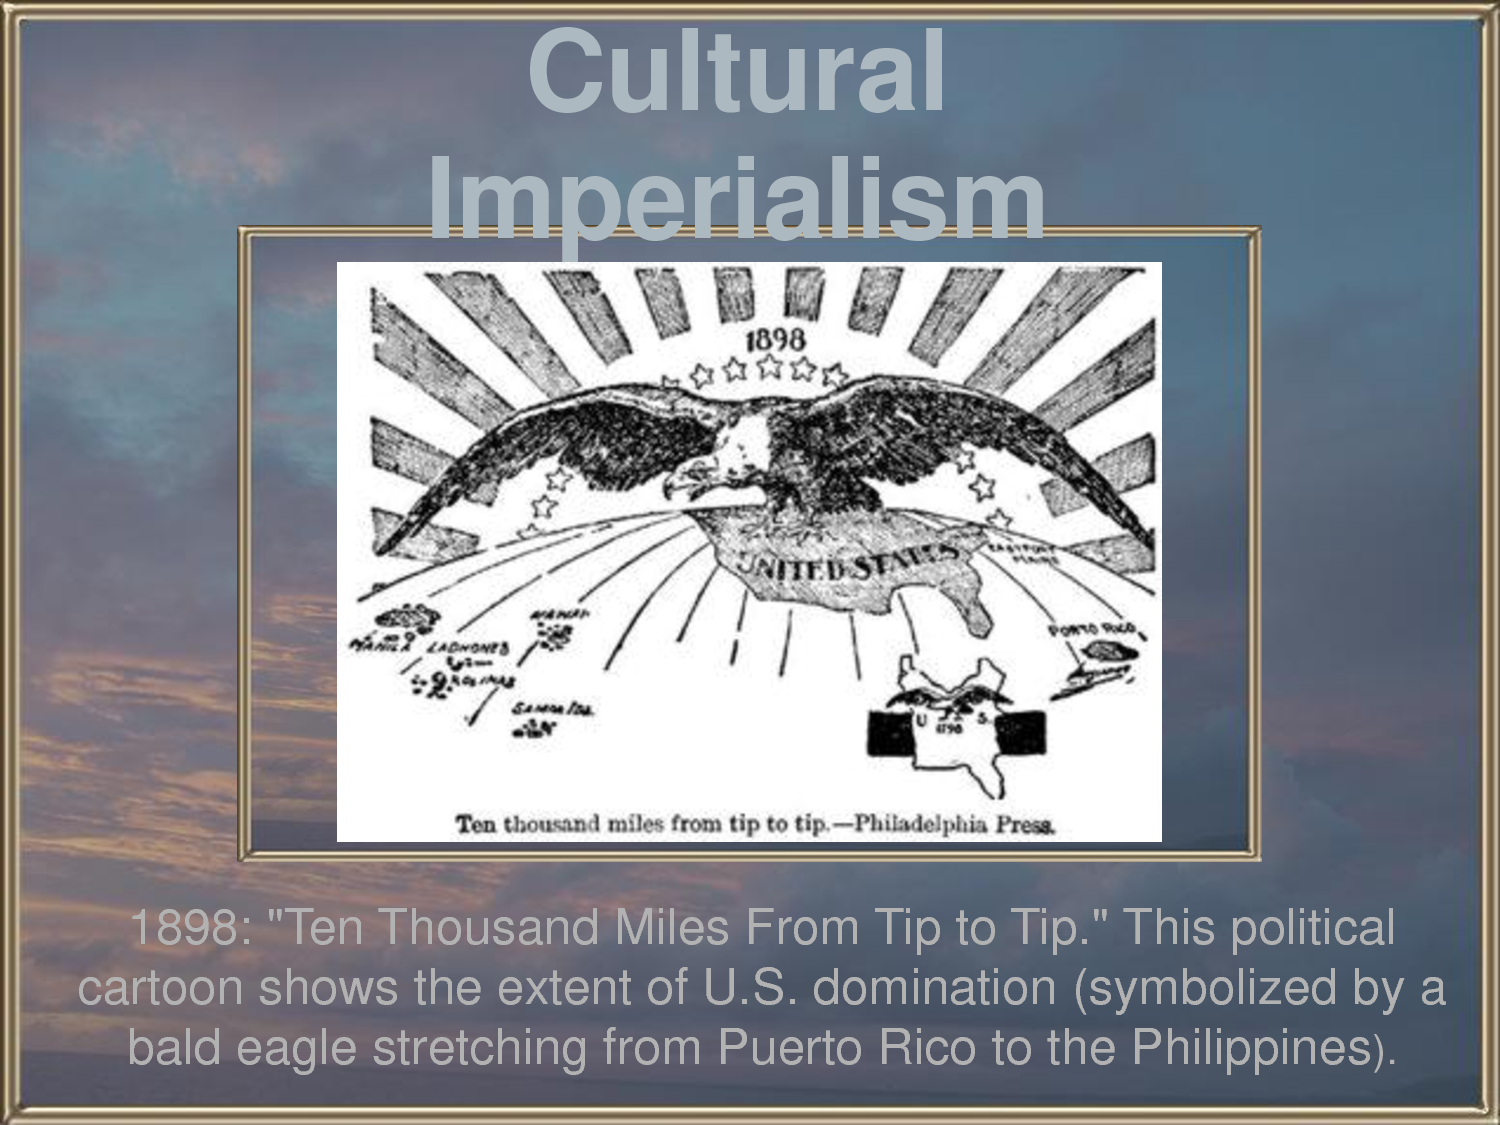 globalization or cultural imperialism essay Concept of deterritorialization as the cultural condition of globalization i argue   influence, this essay first addresses the early theories of cultural imperialism.